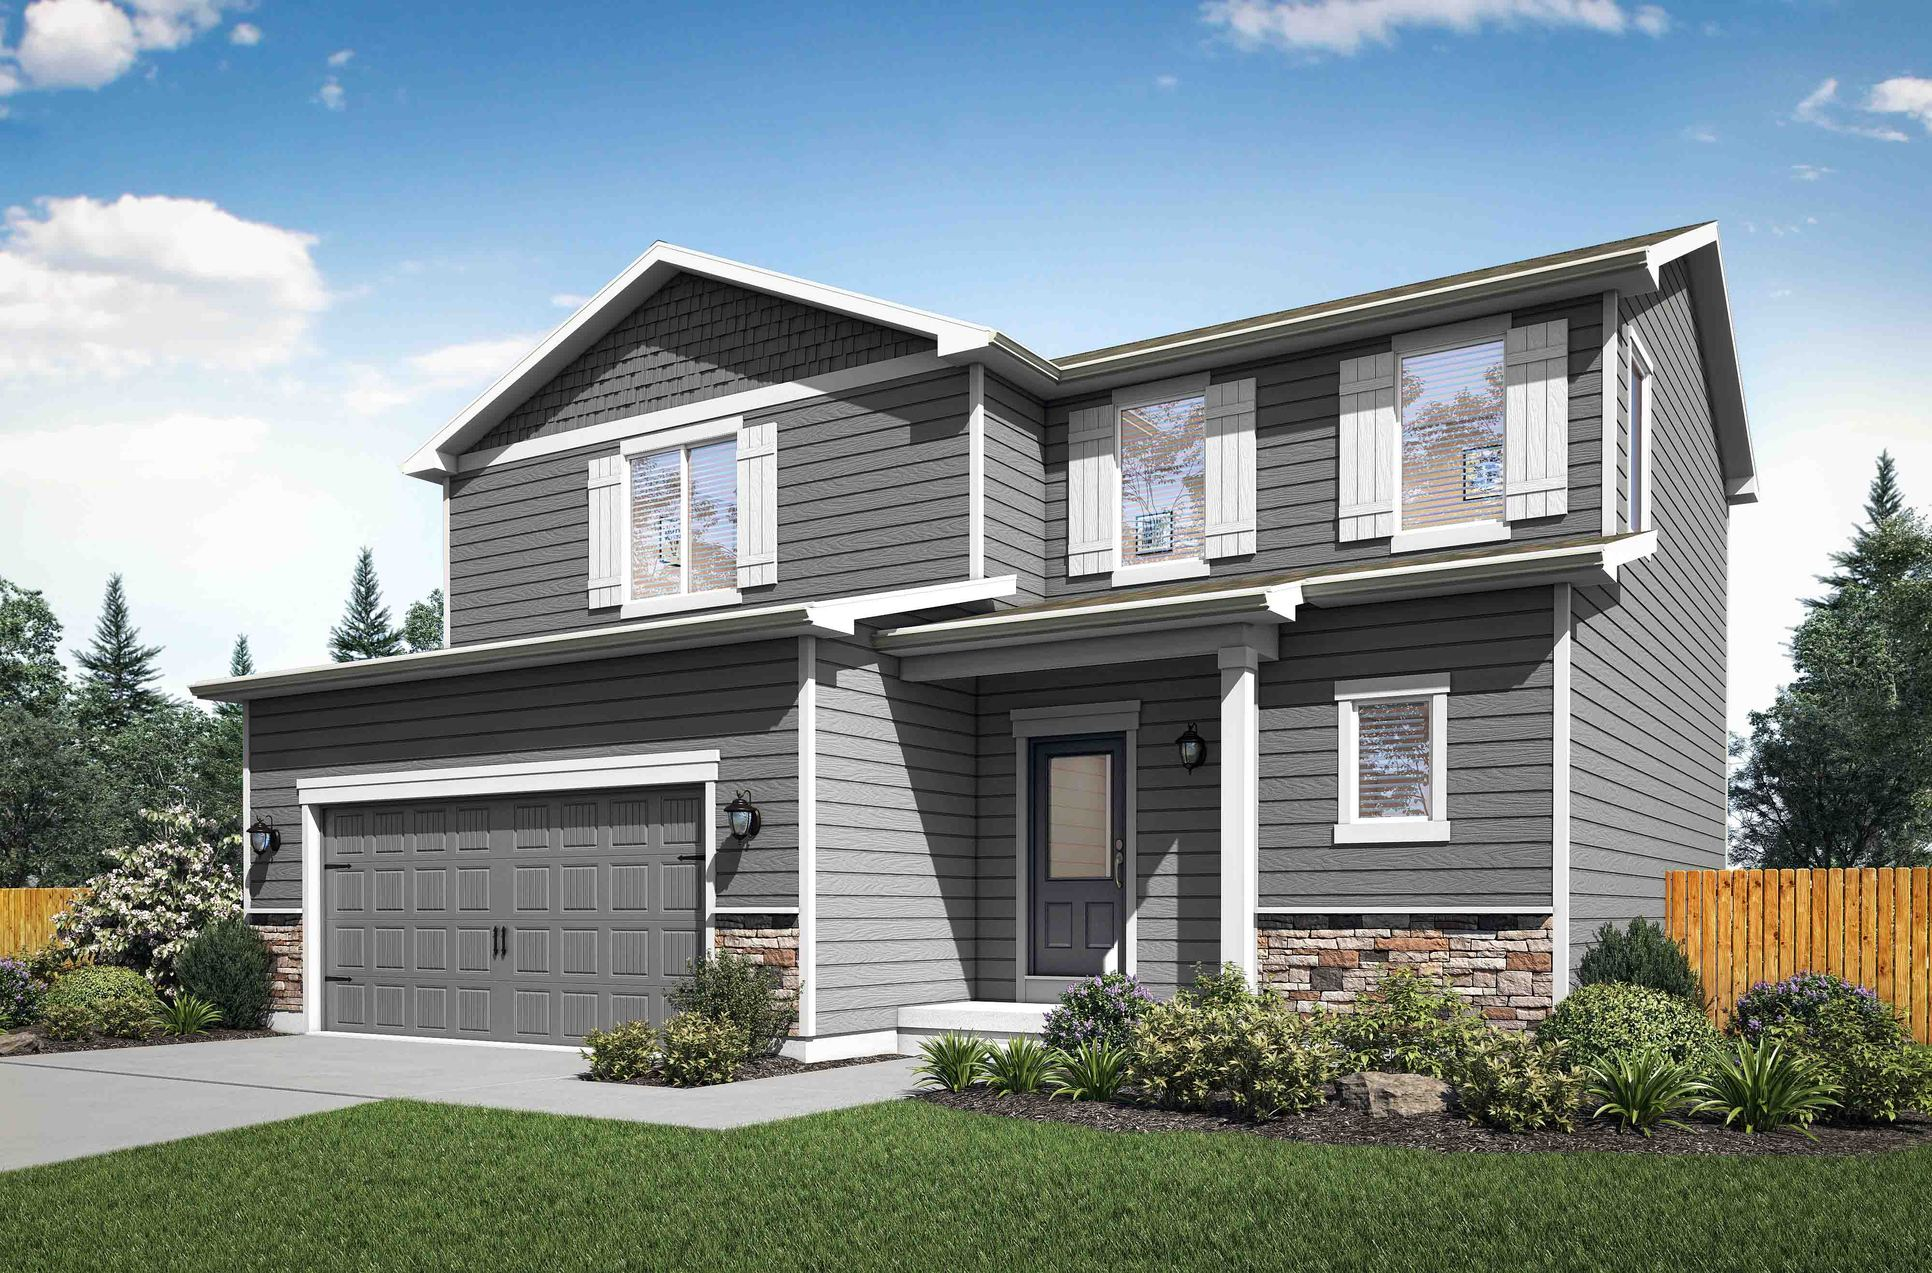 The Mesa Verde by LGI Homes